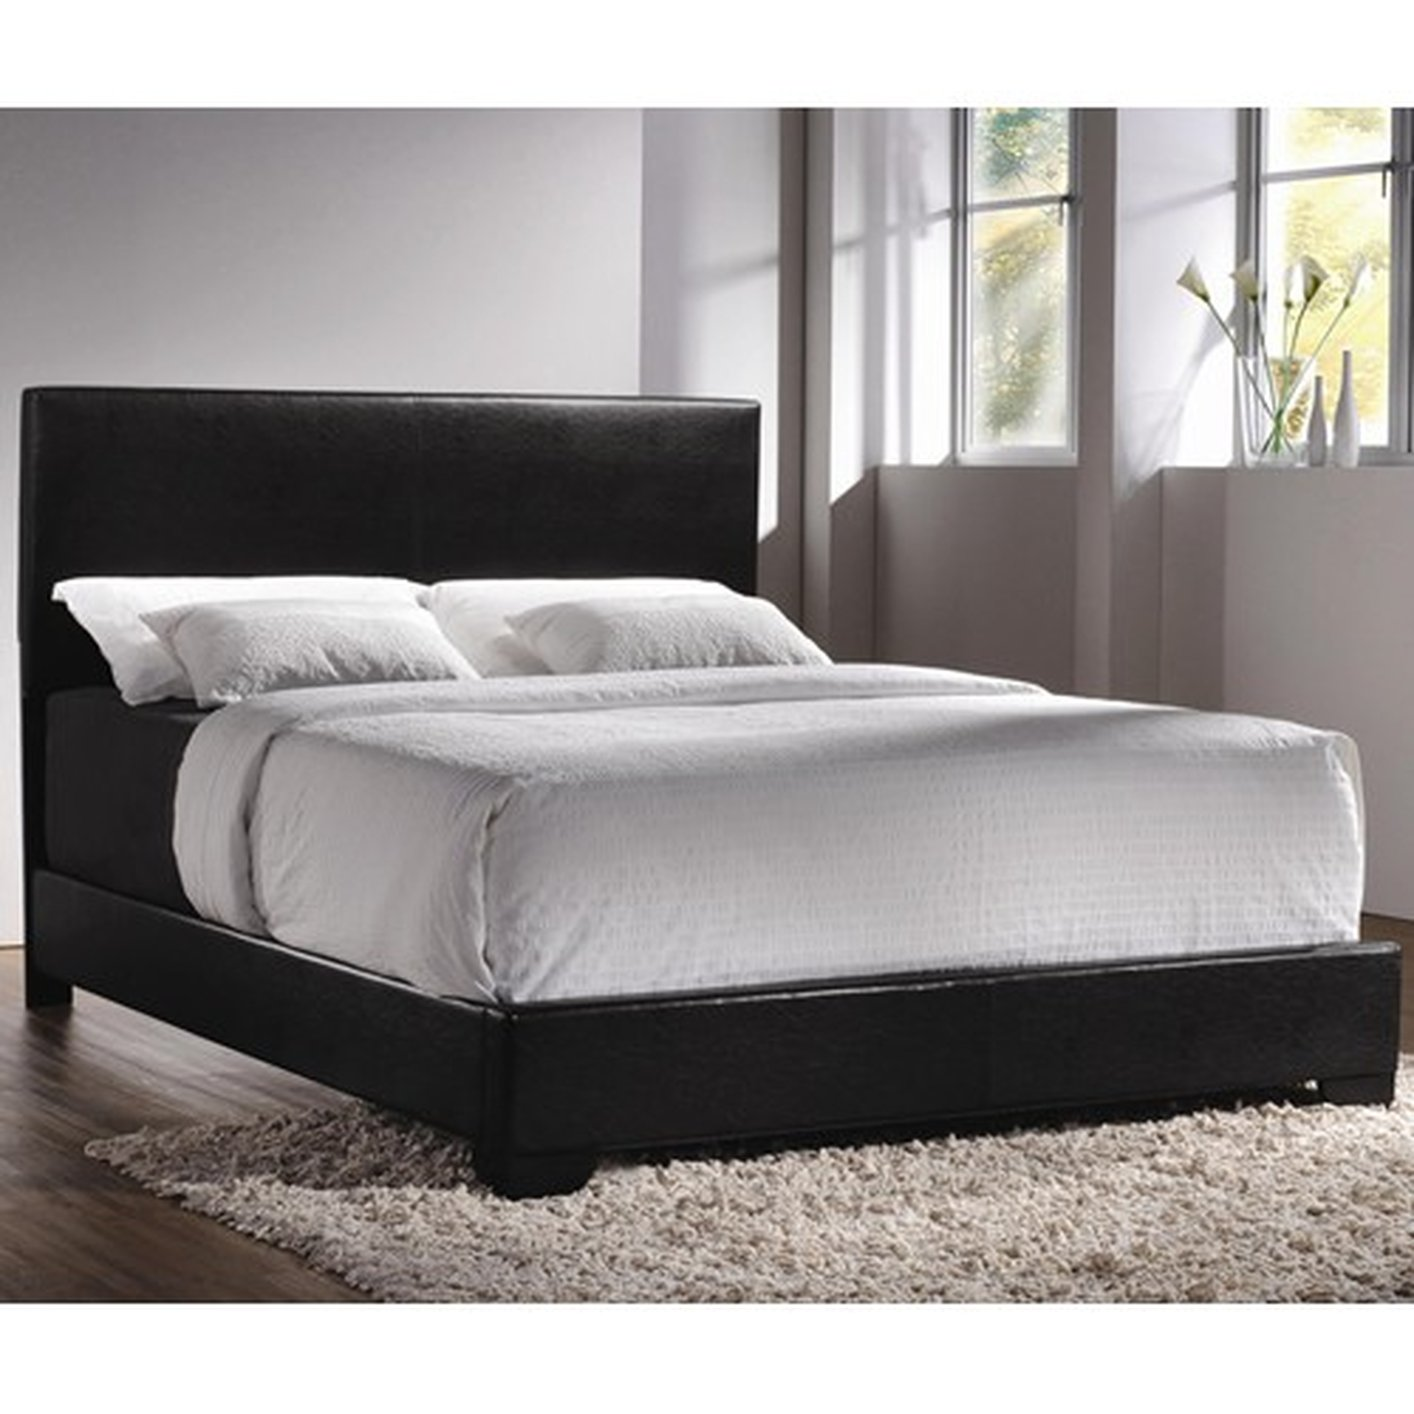 Coaster 300260Q Black Queen Size Leather Bed - Steal-A-Sofa ...